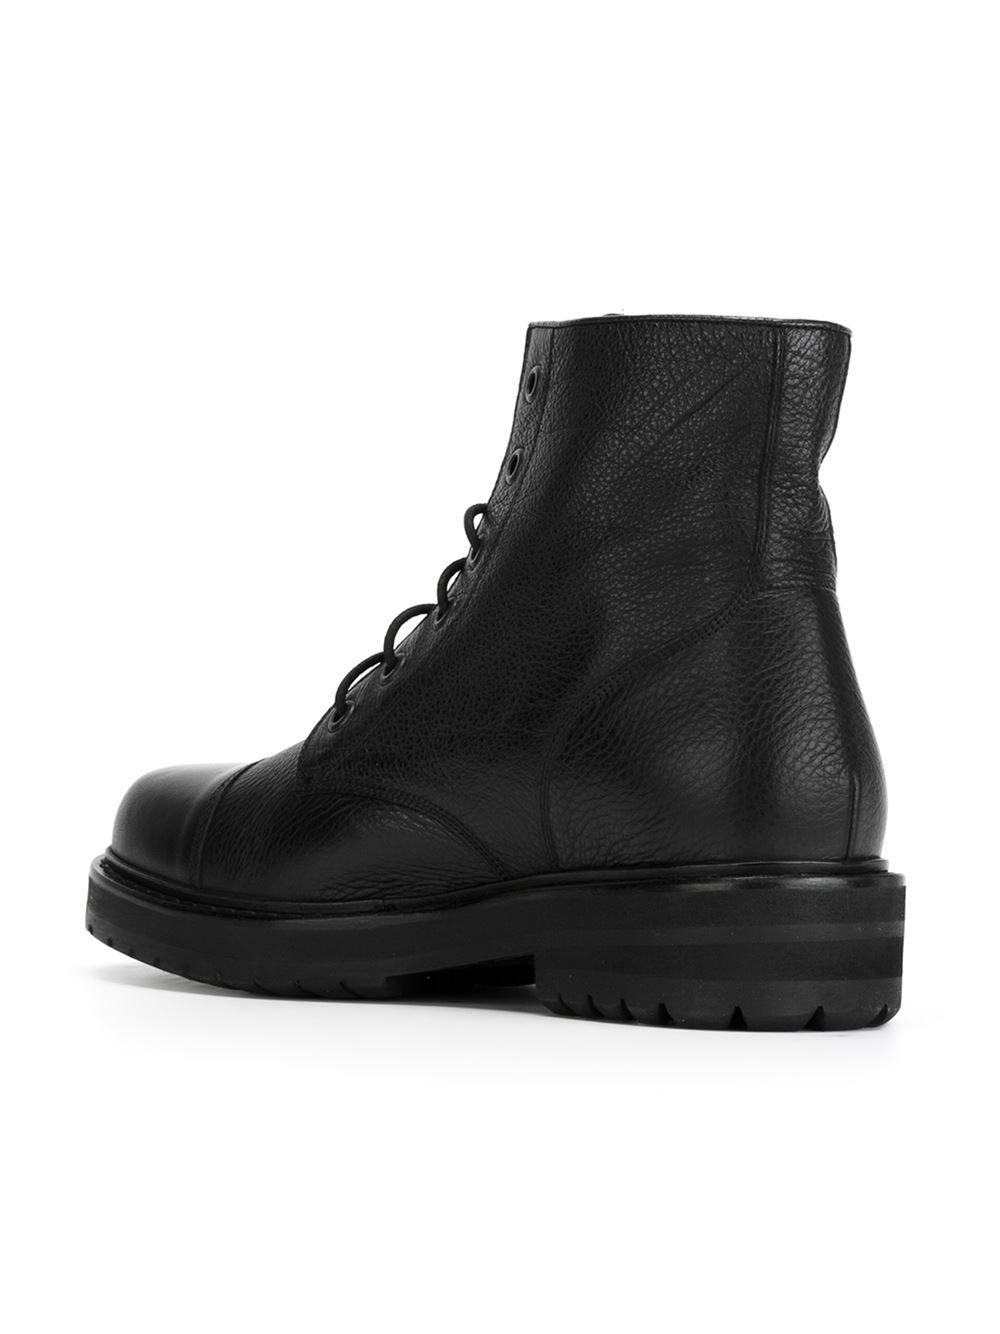 Marc Jacobs Lace Up Boots In Black For Men Lyst